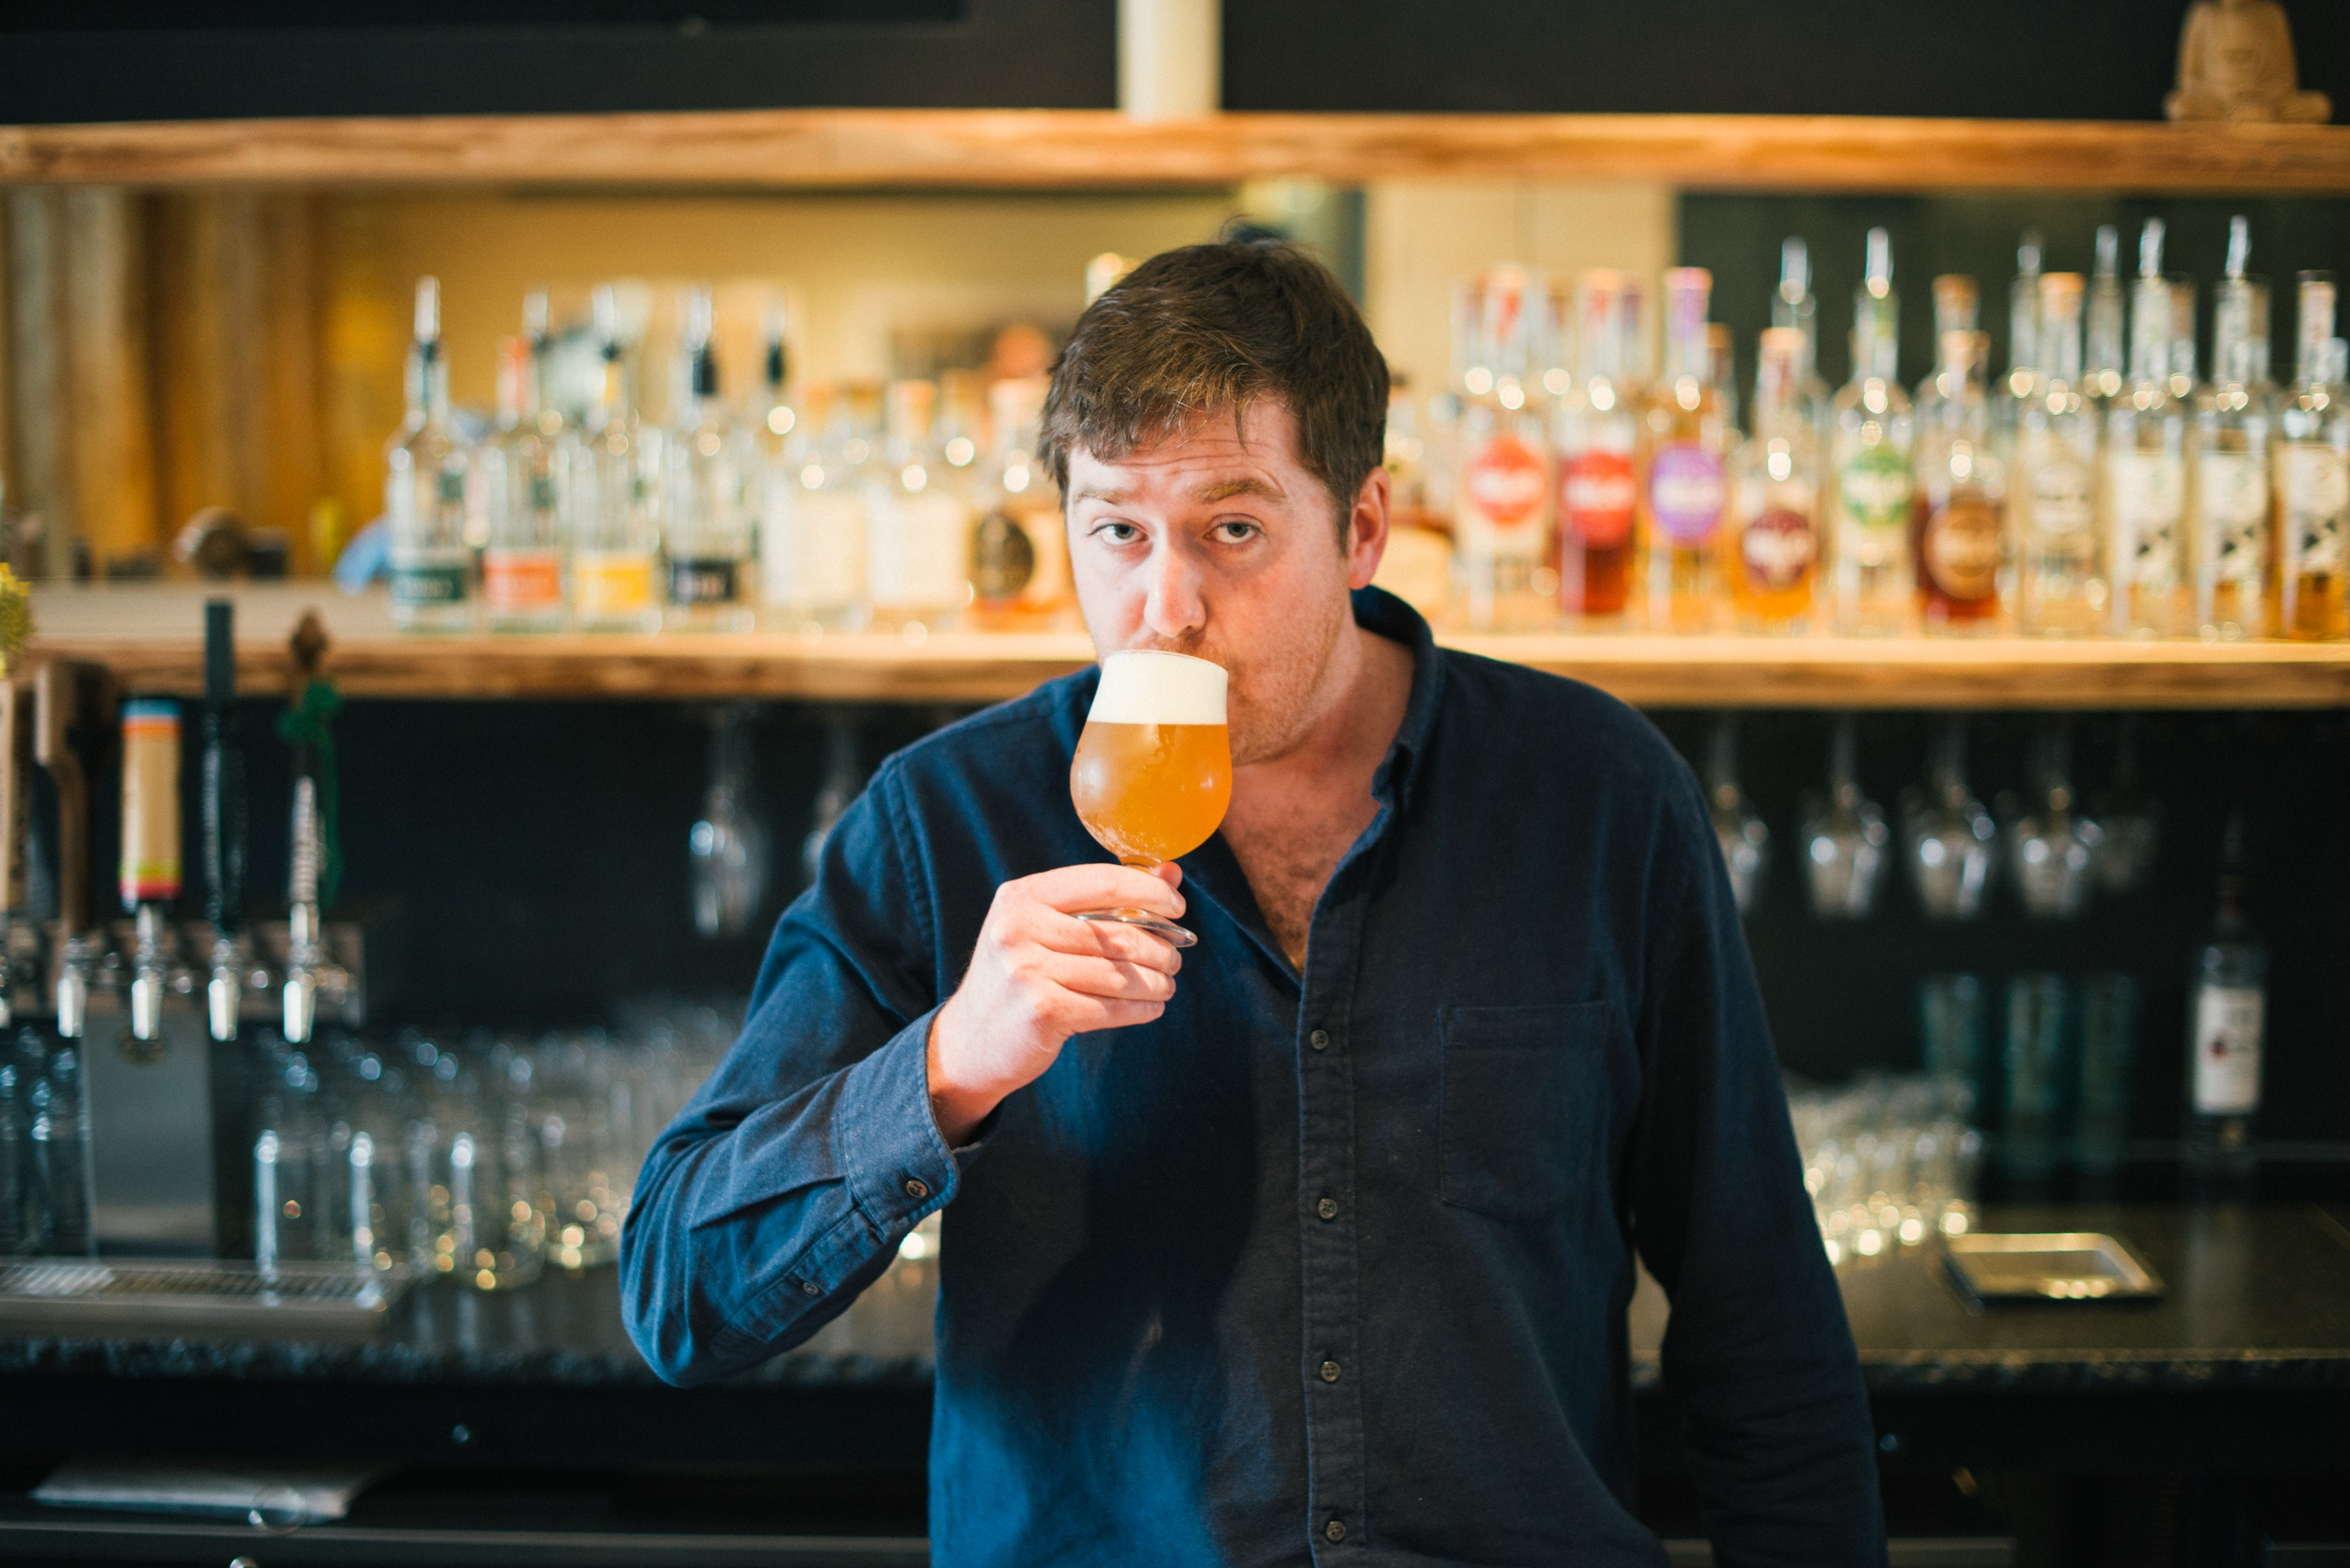 Matt Canning is the beer concierge at Hotel Vermont in Burlington, Vermont. Yes, that's a real job.